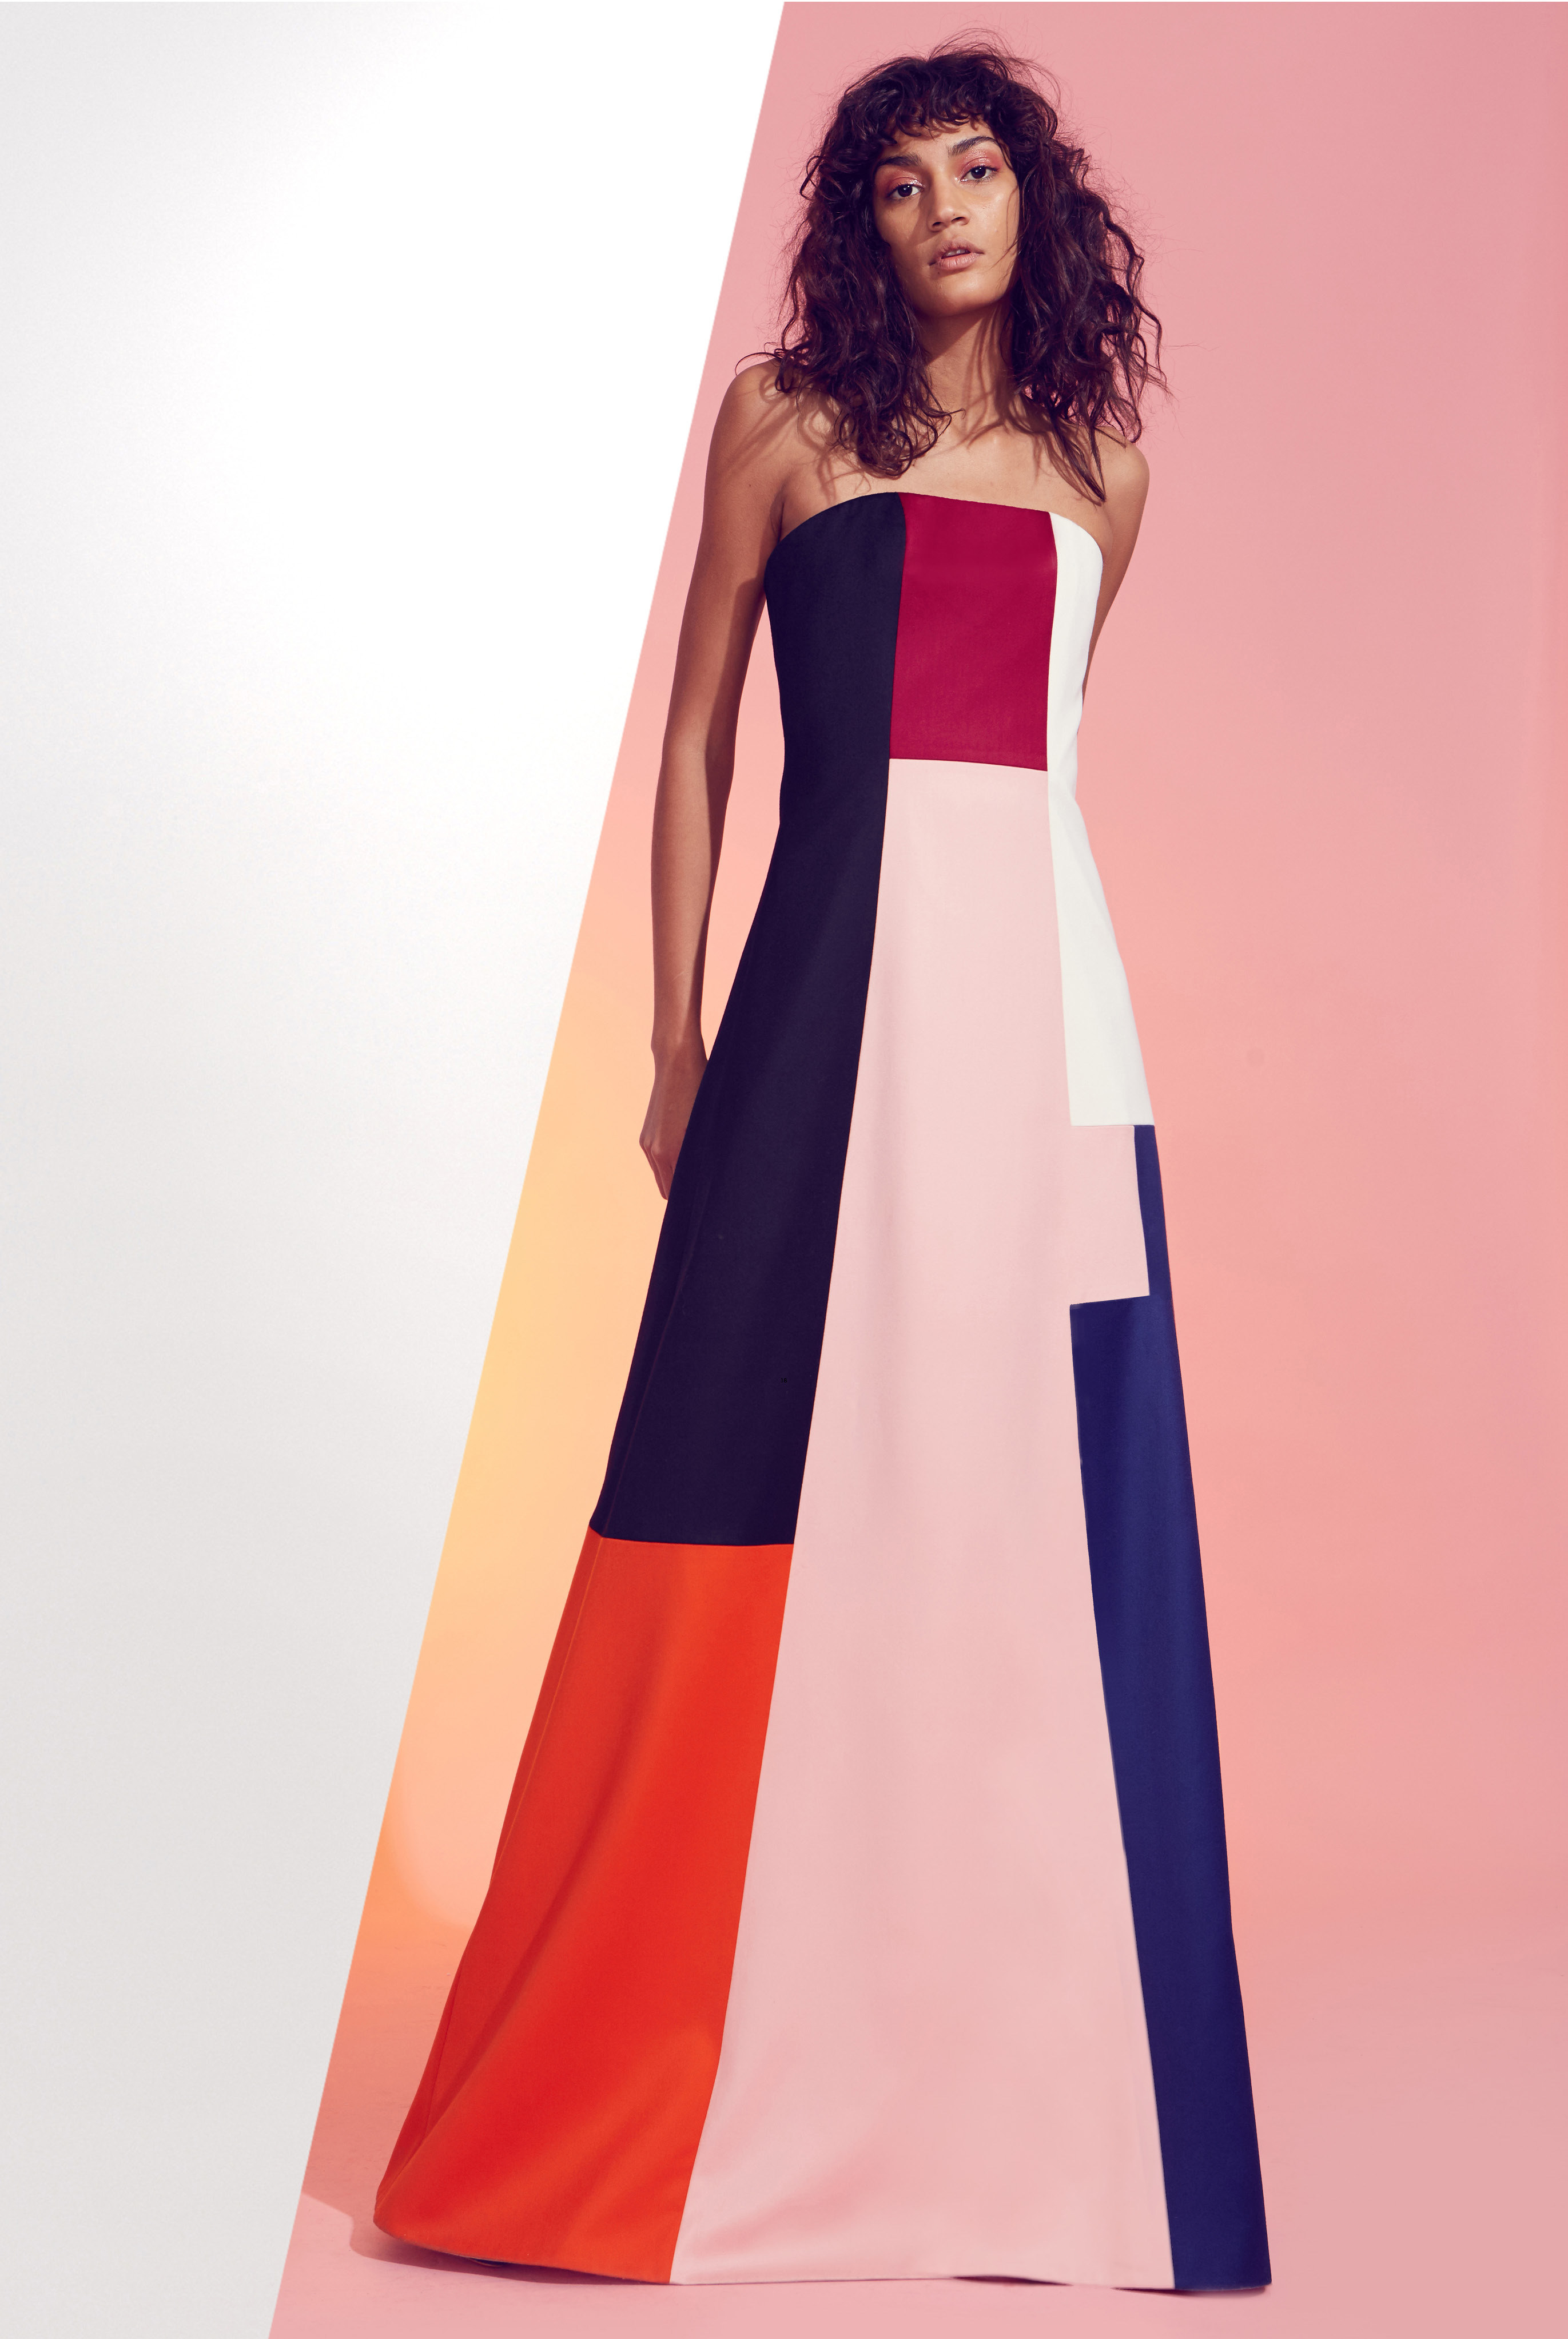 Clothing with vibrant colors and bold shapes, cuts and graphical elements.